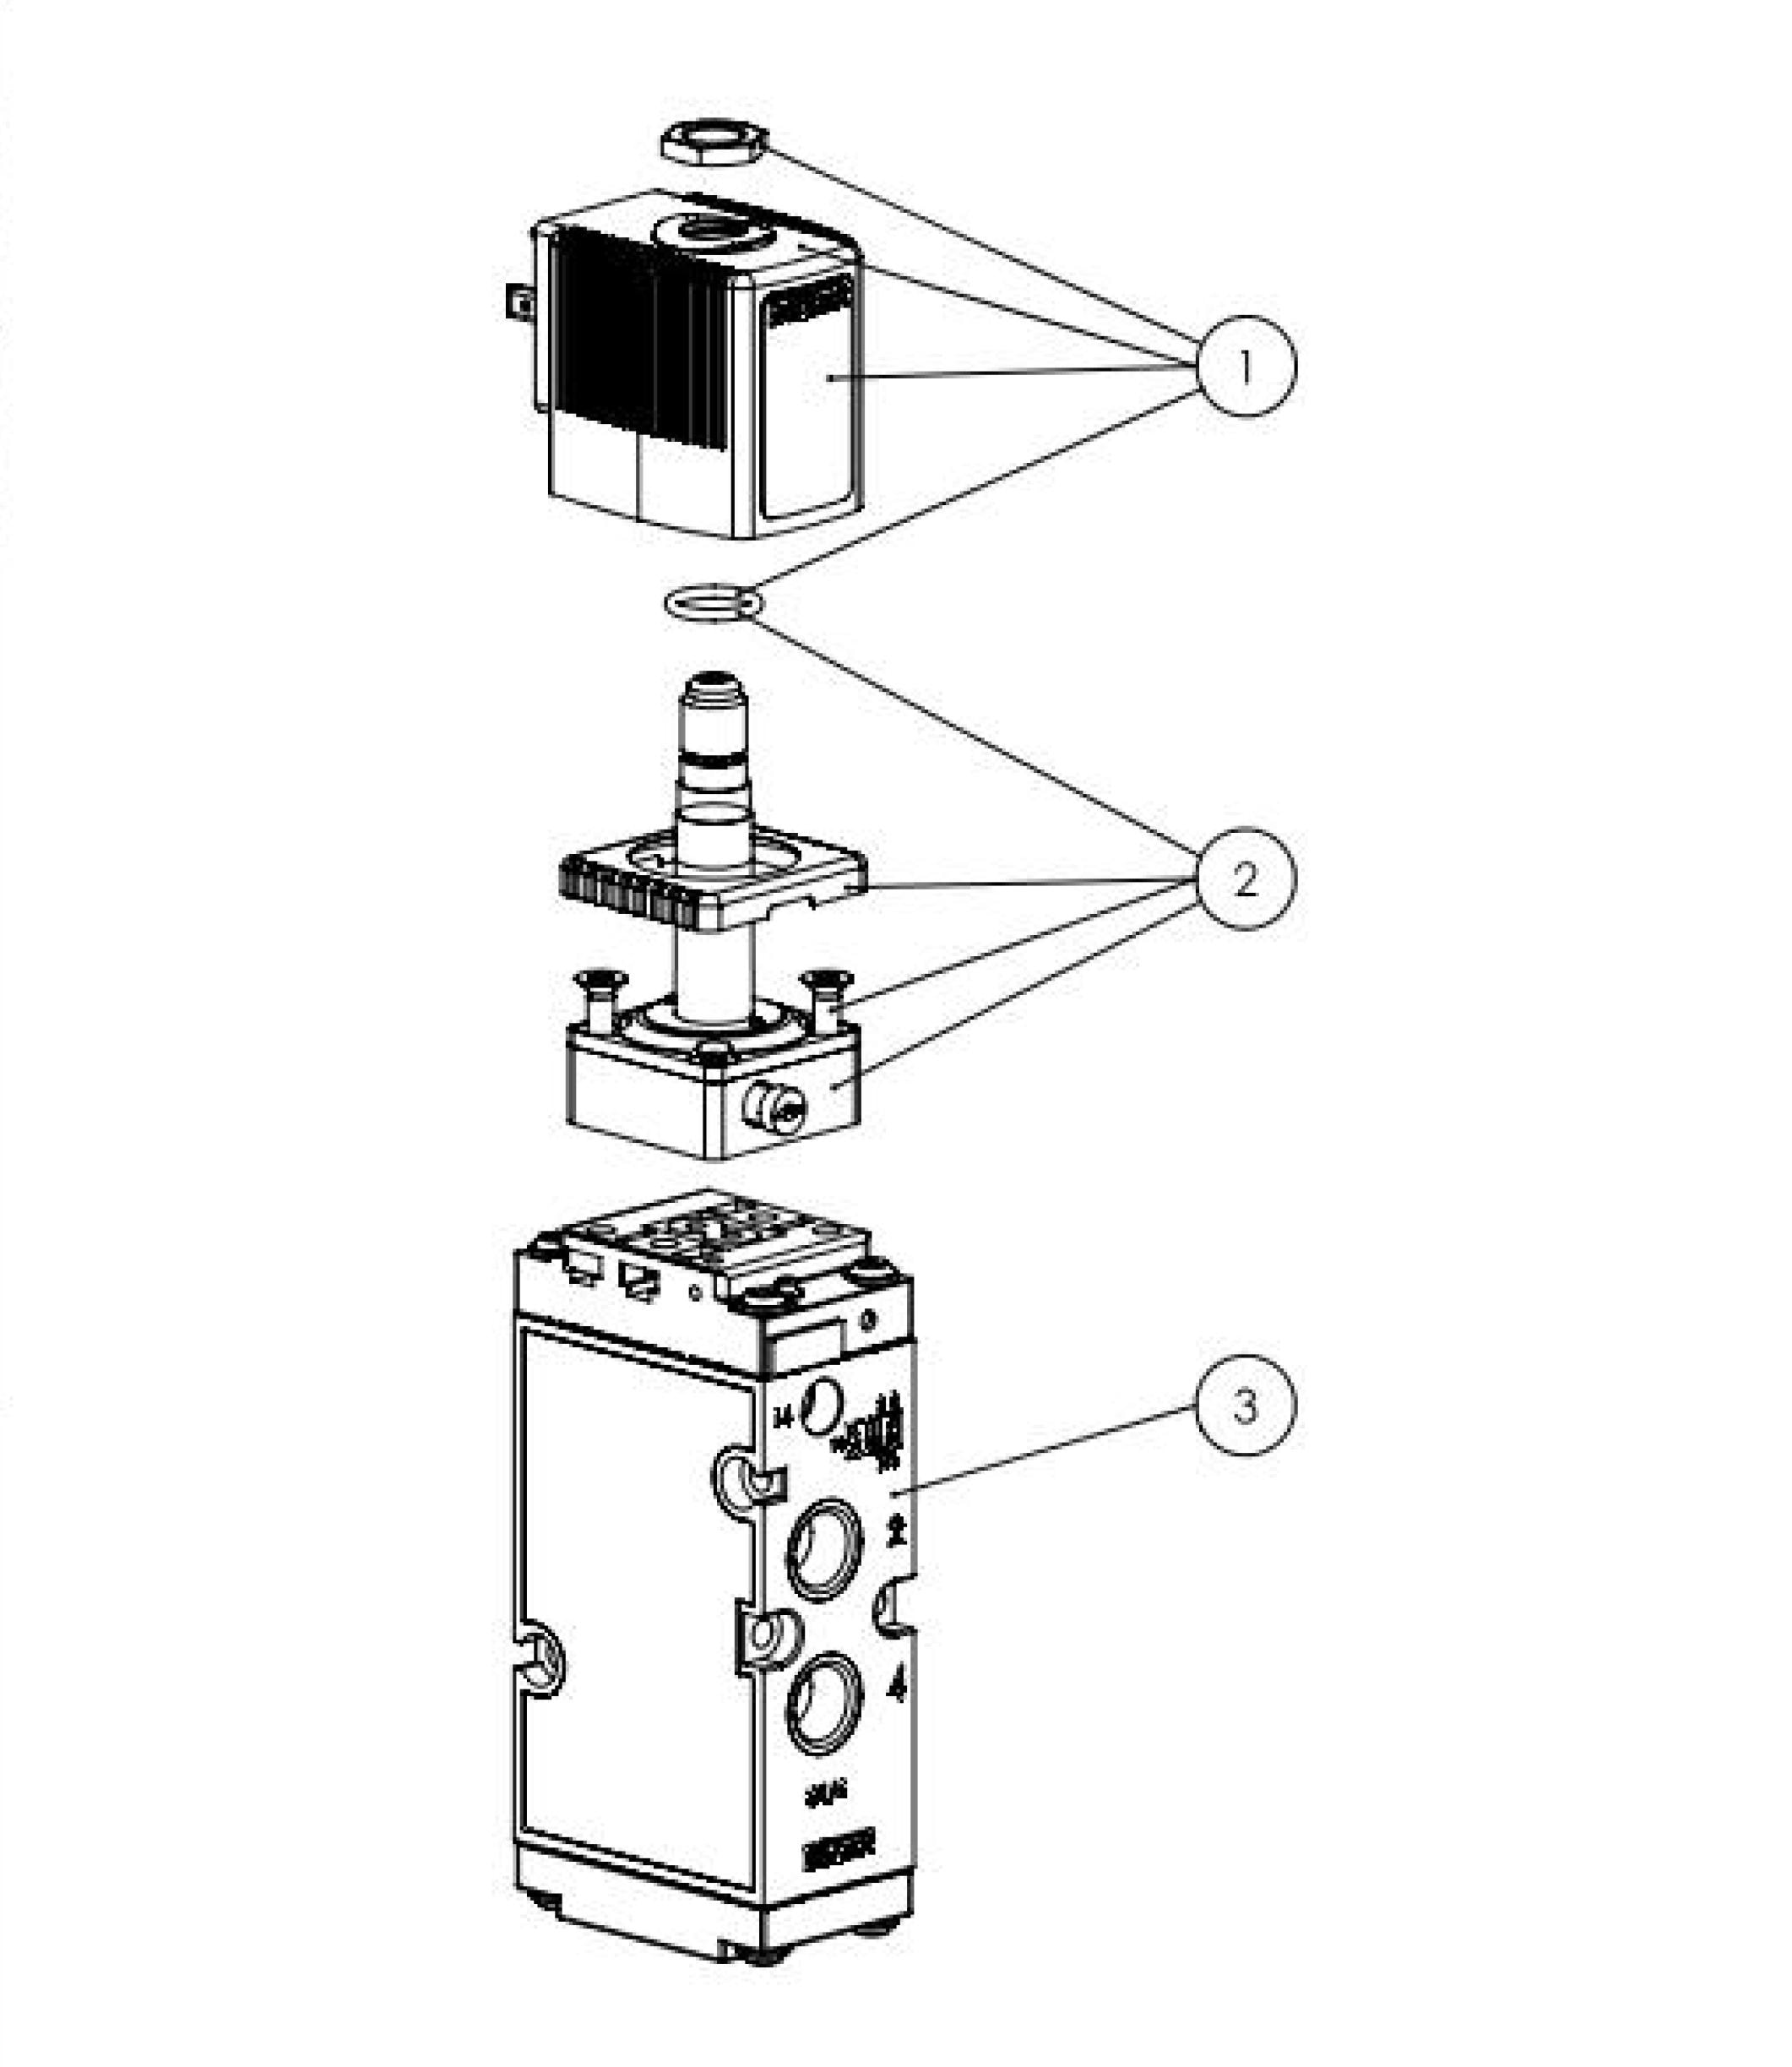 2 Way Switch Datasheet Type 6519 Servo Assisted 5 3 Or Solenoid Valve For The Depiction Of Products May Differ From Actual Specific Design